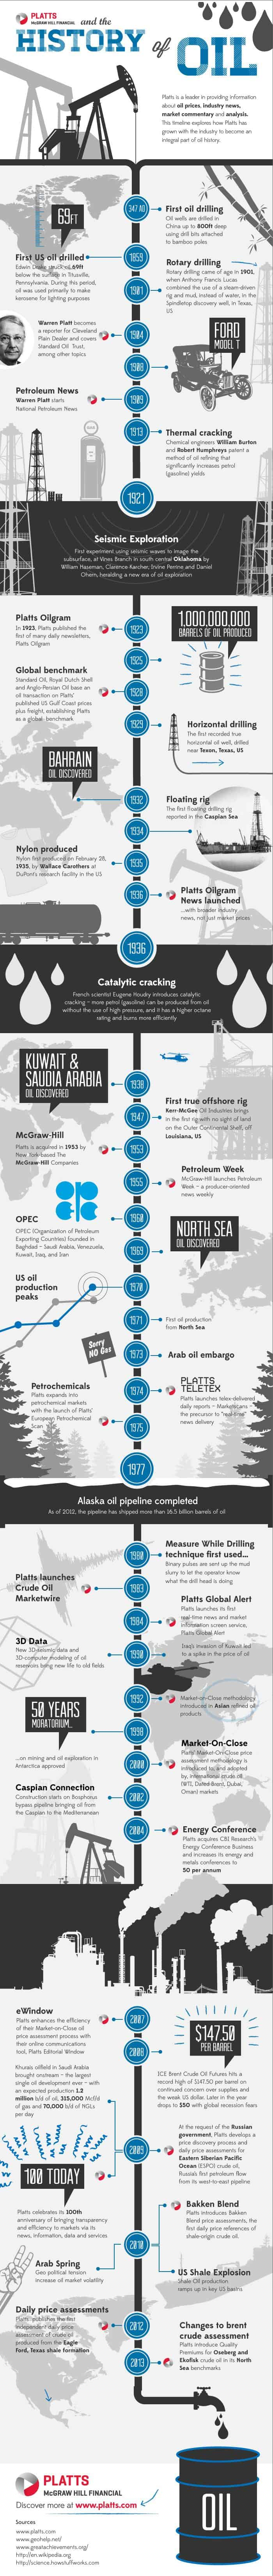 Infographic about the history of oil drilling and where it is today.